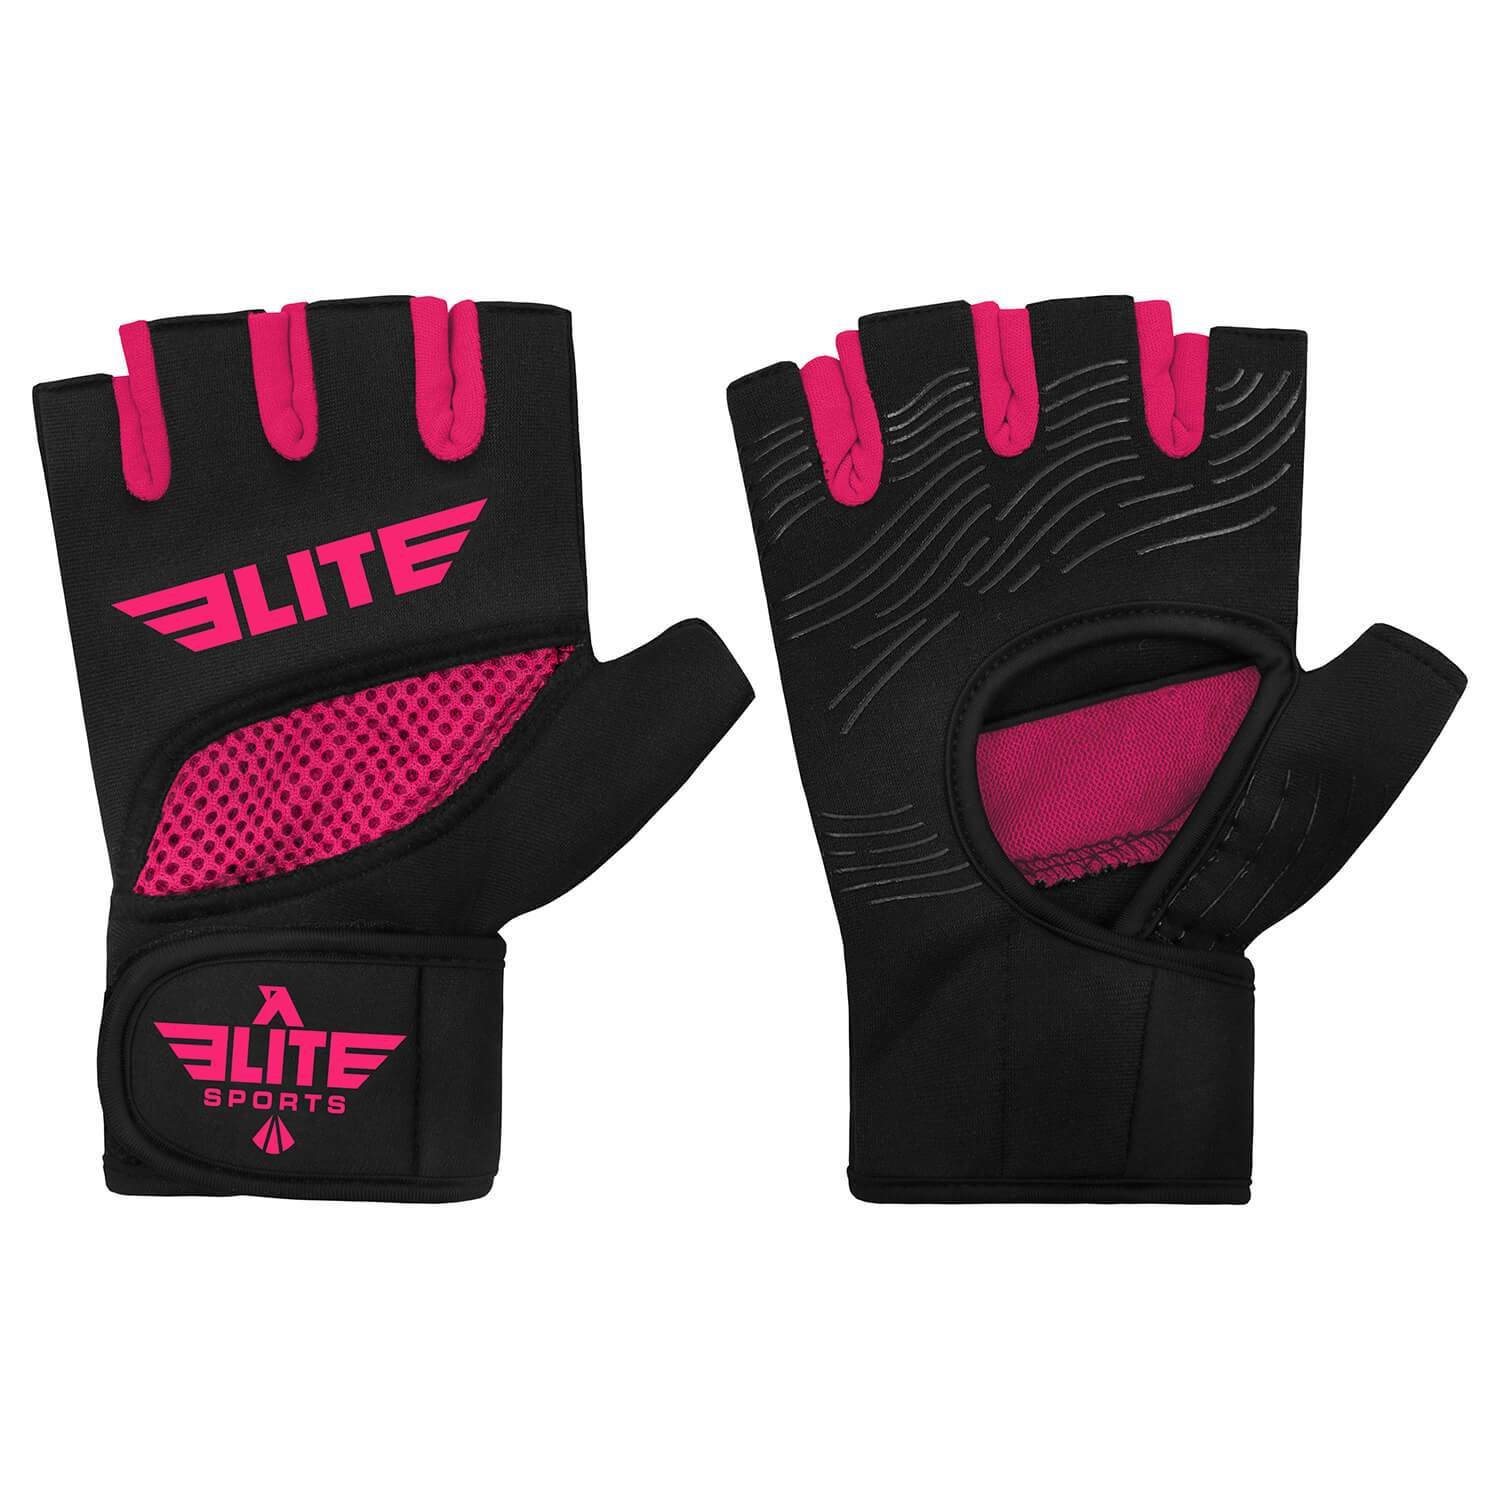 Load image into Gallery viewer, Elite Sports Black/Pink Cross Training Gel Hand Wraps